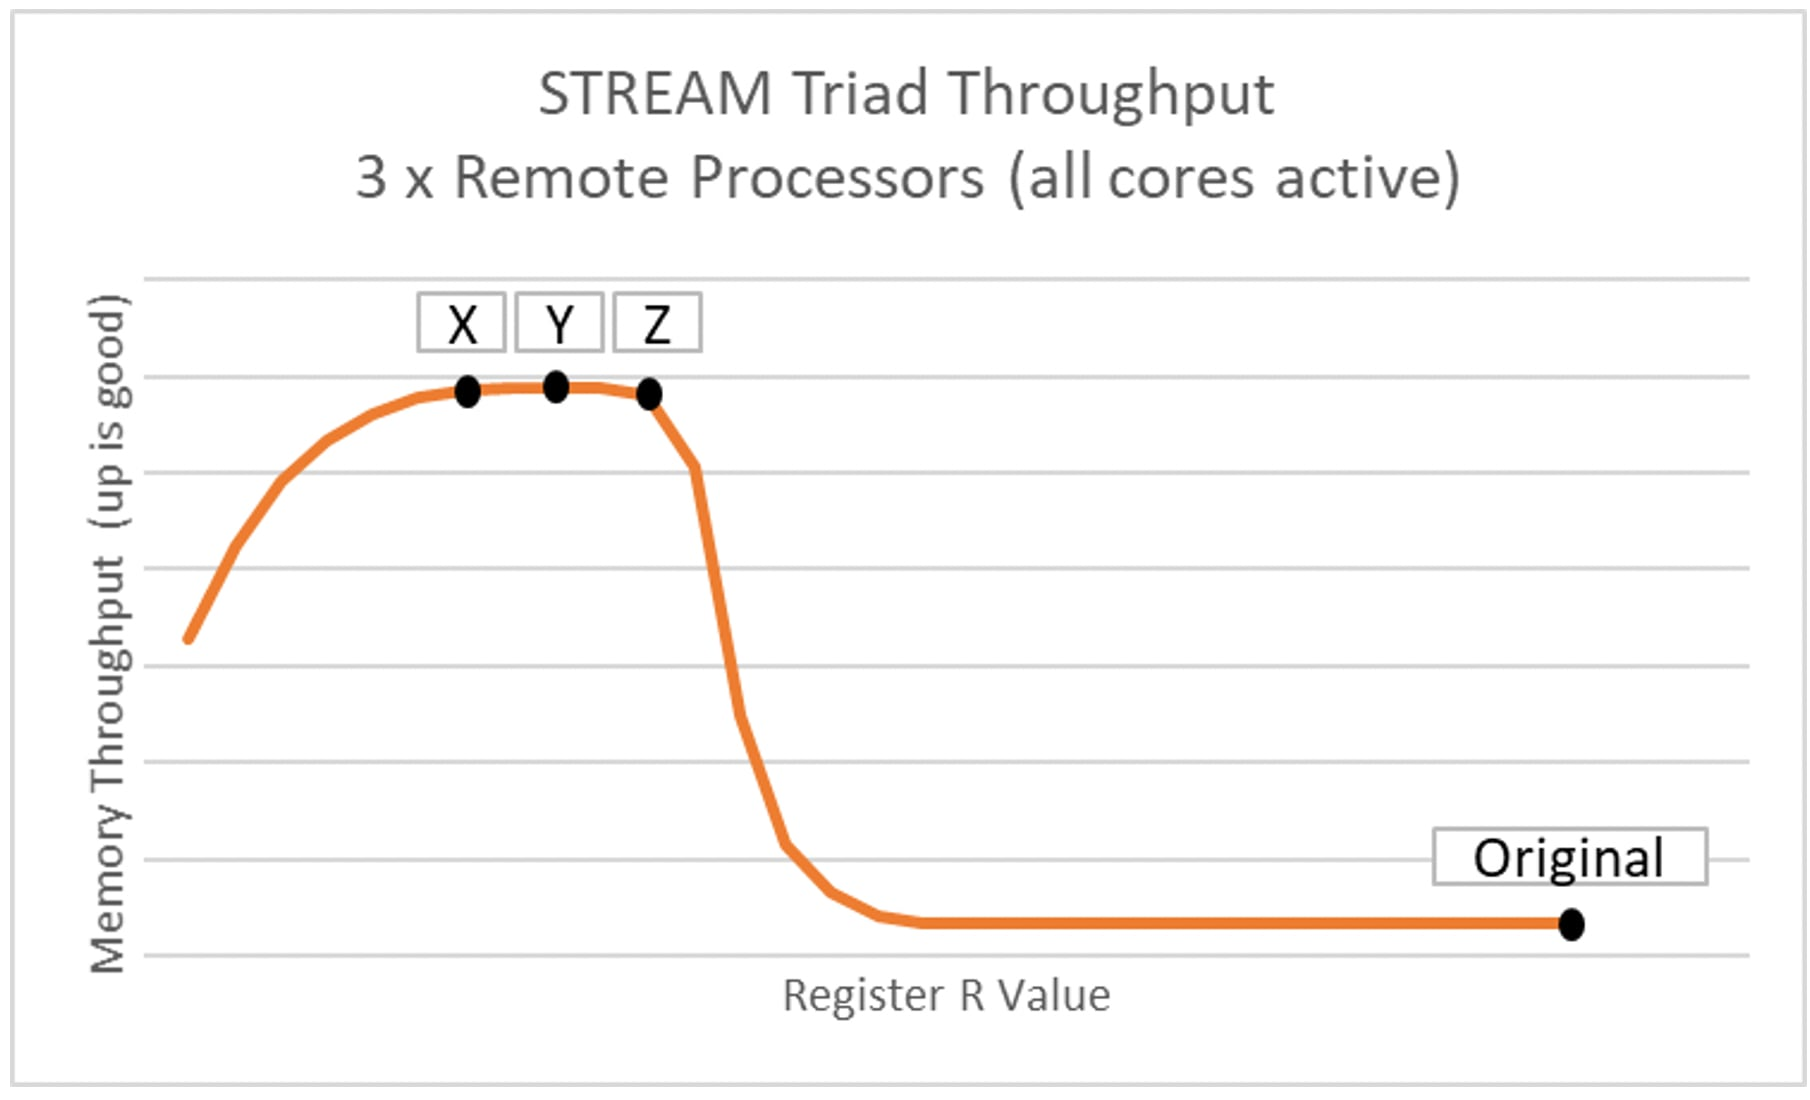 This shows memory throughput in the most challenging case of the problem workload, where all cores are active on each of the three processors running STREAM: